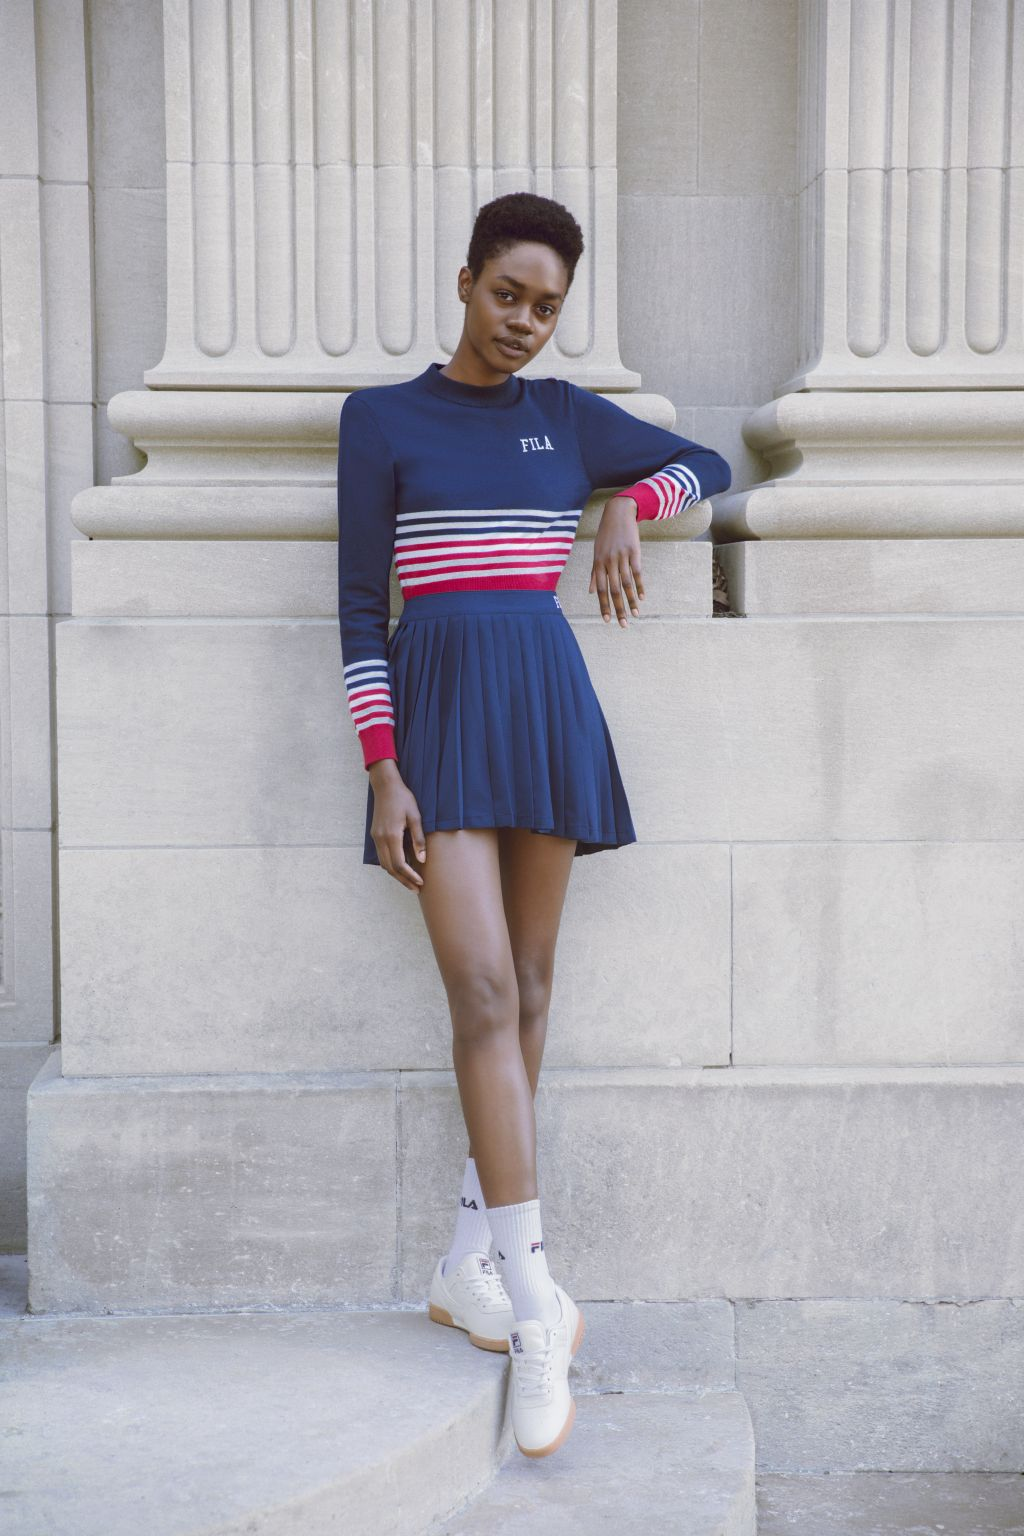 FILA Fall Winter 2017 Heritage Lookbook, Dress